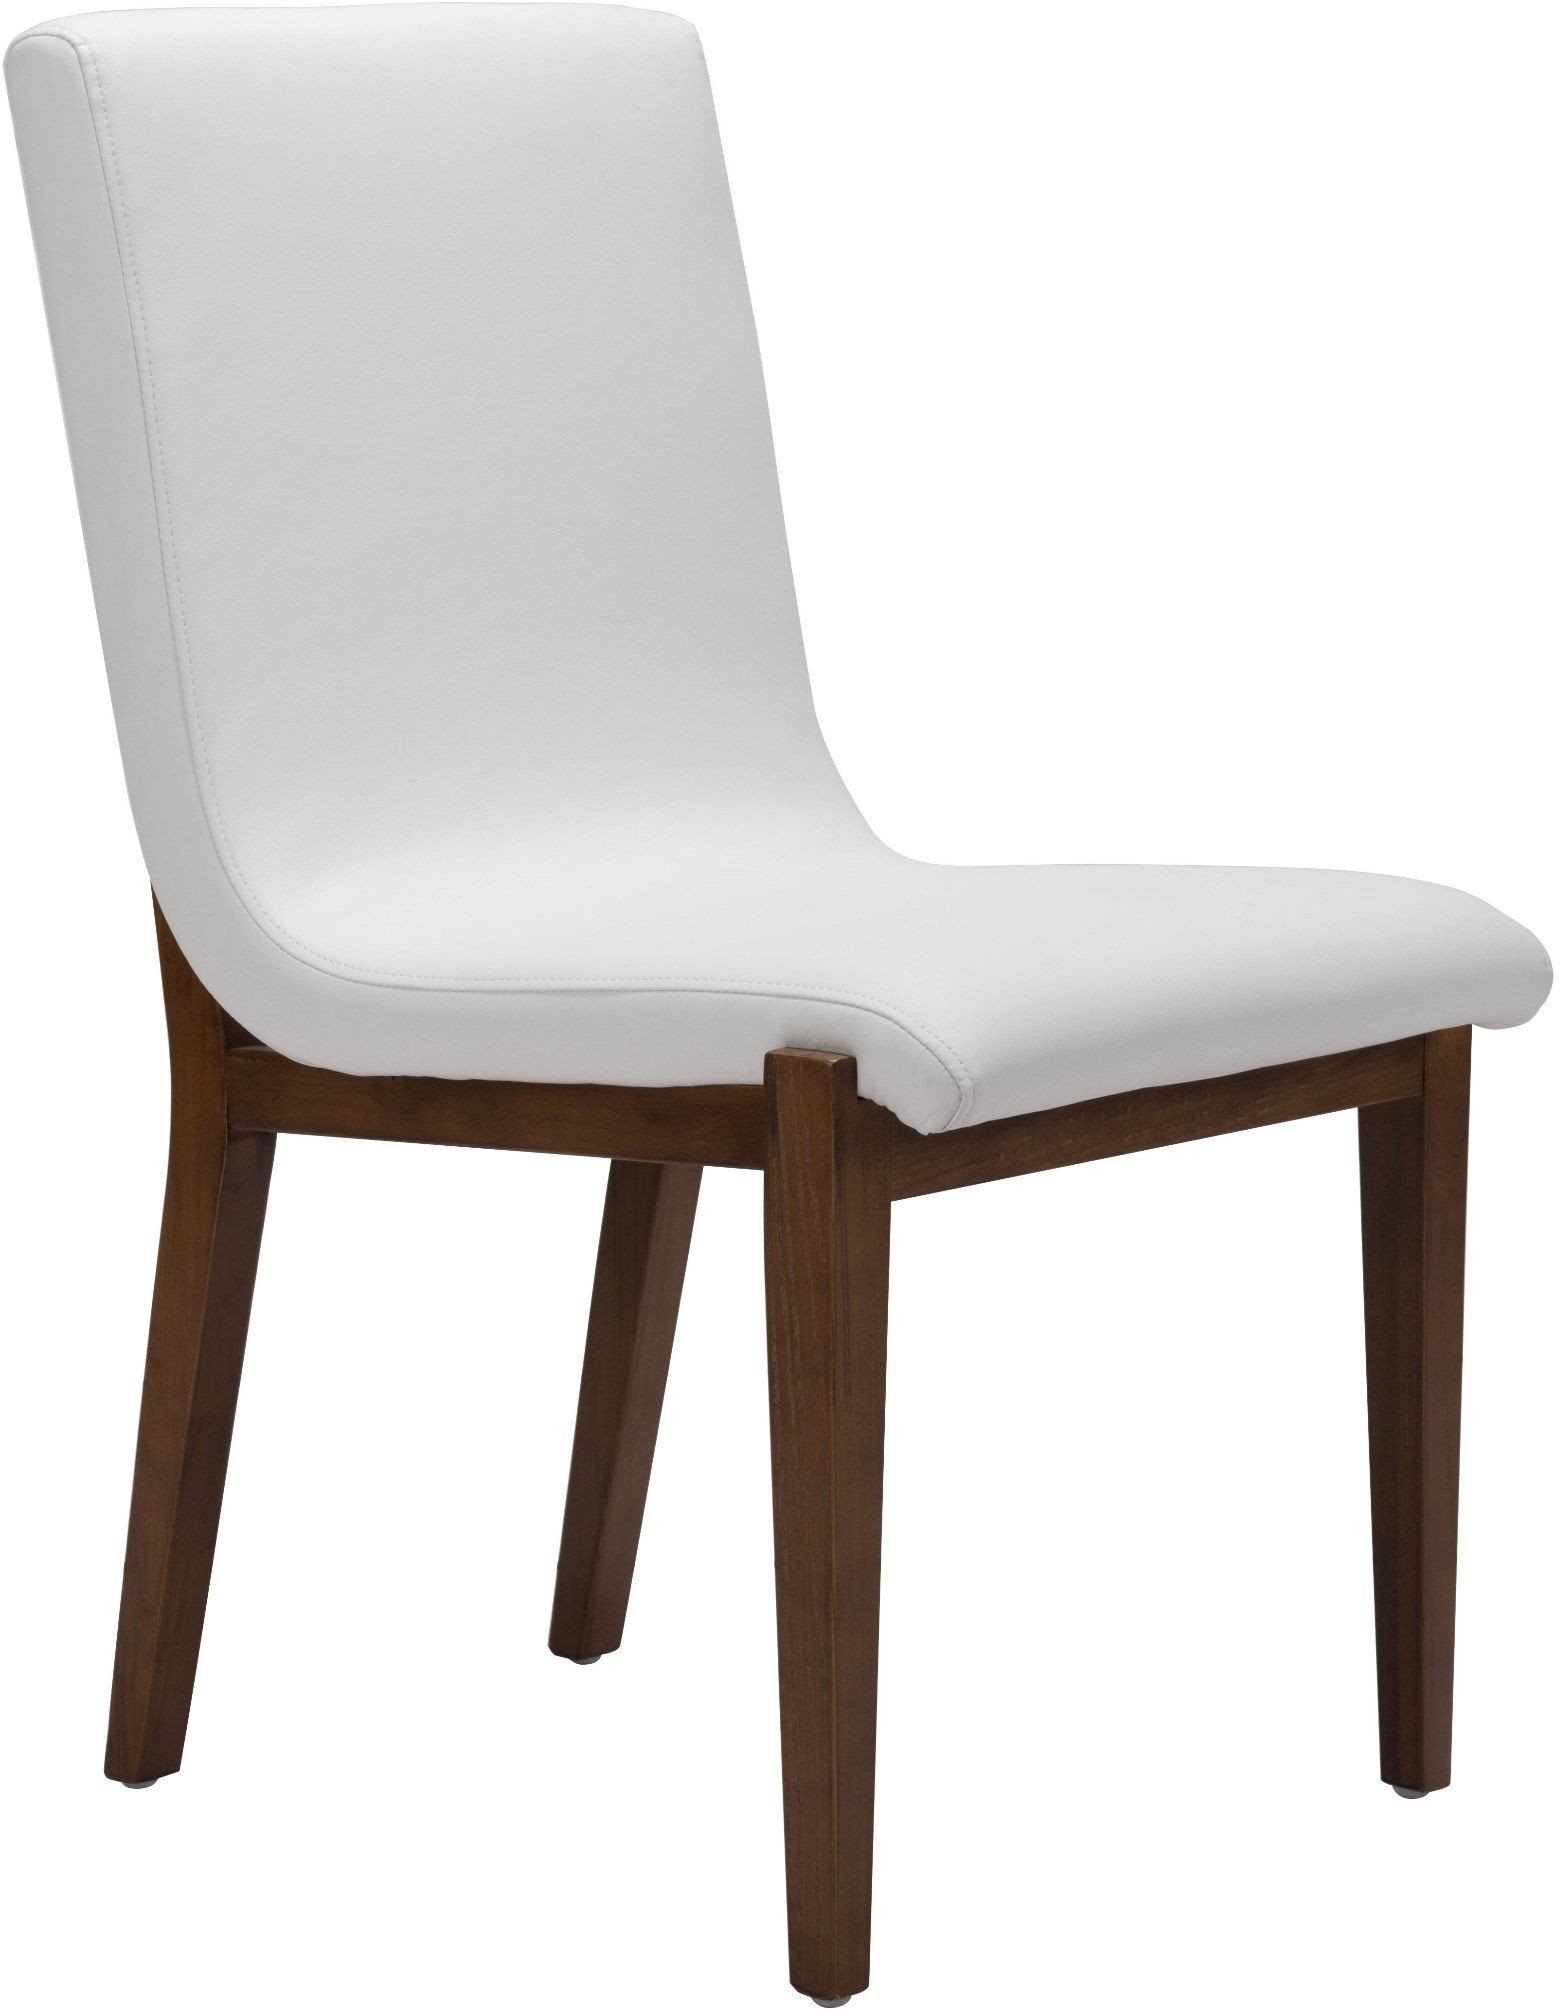 Hamilton White Dining Chair Set of 2 from Zuo  Coleman